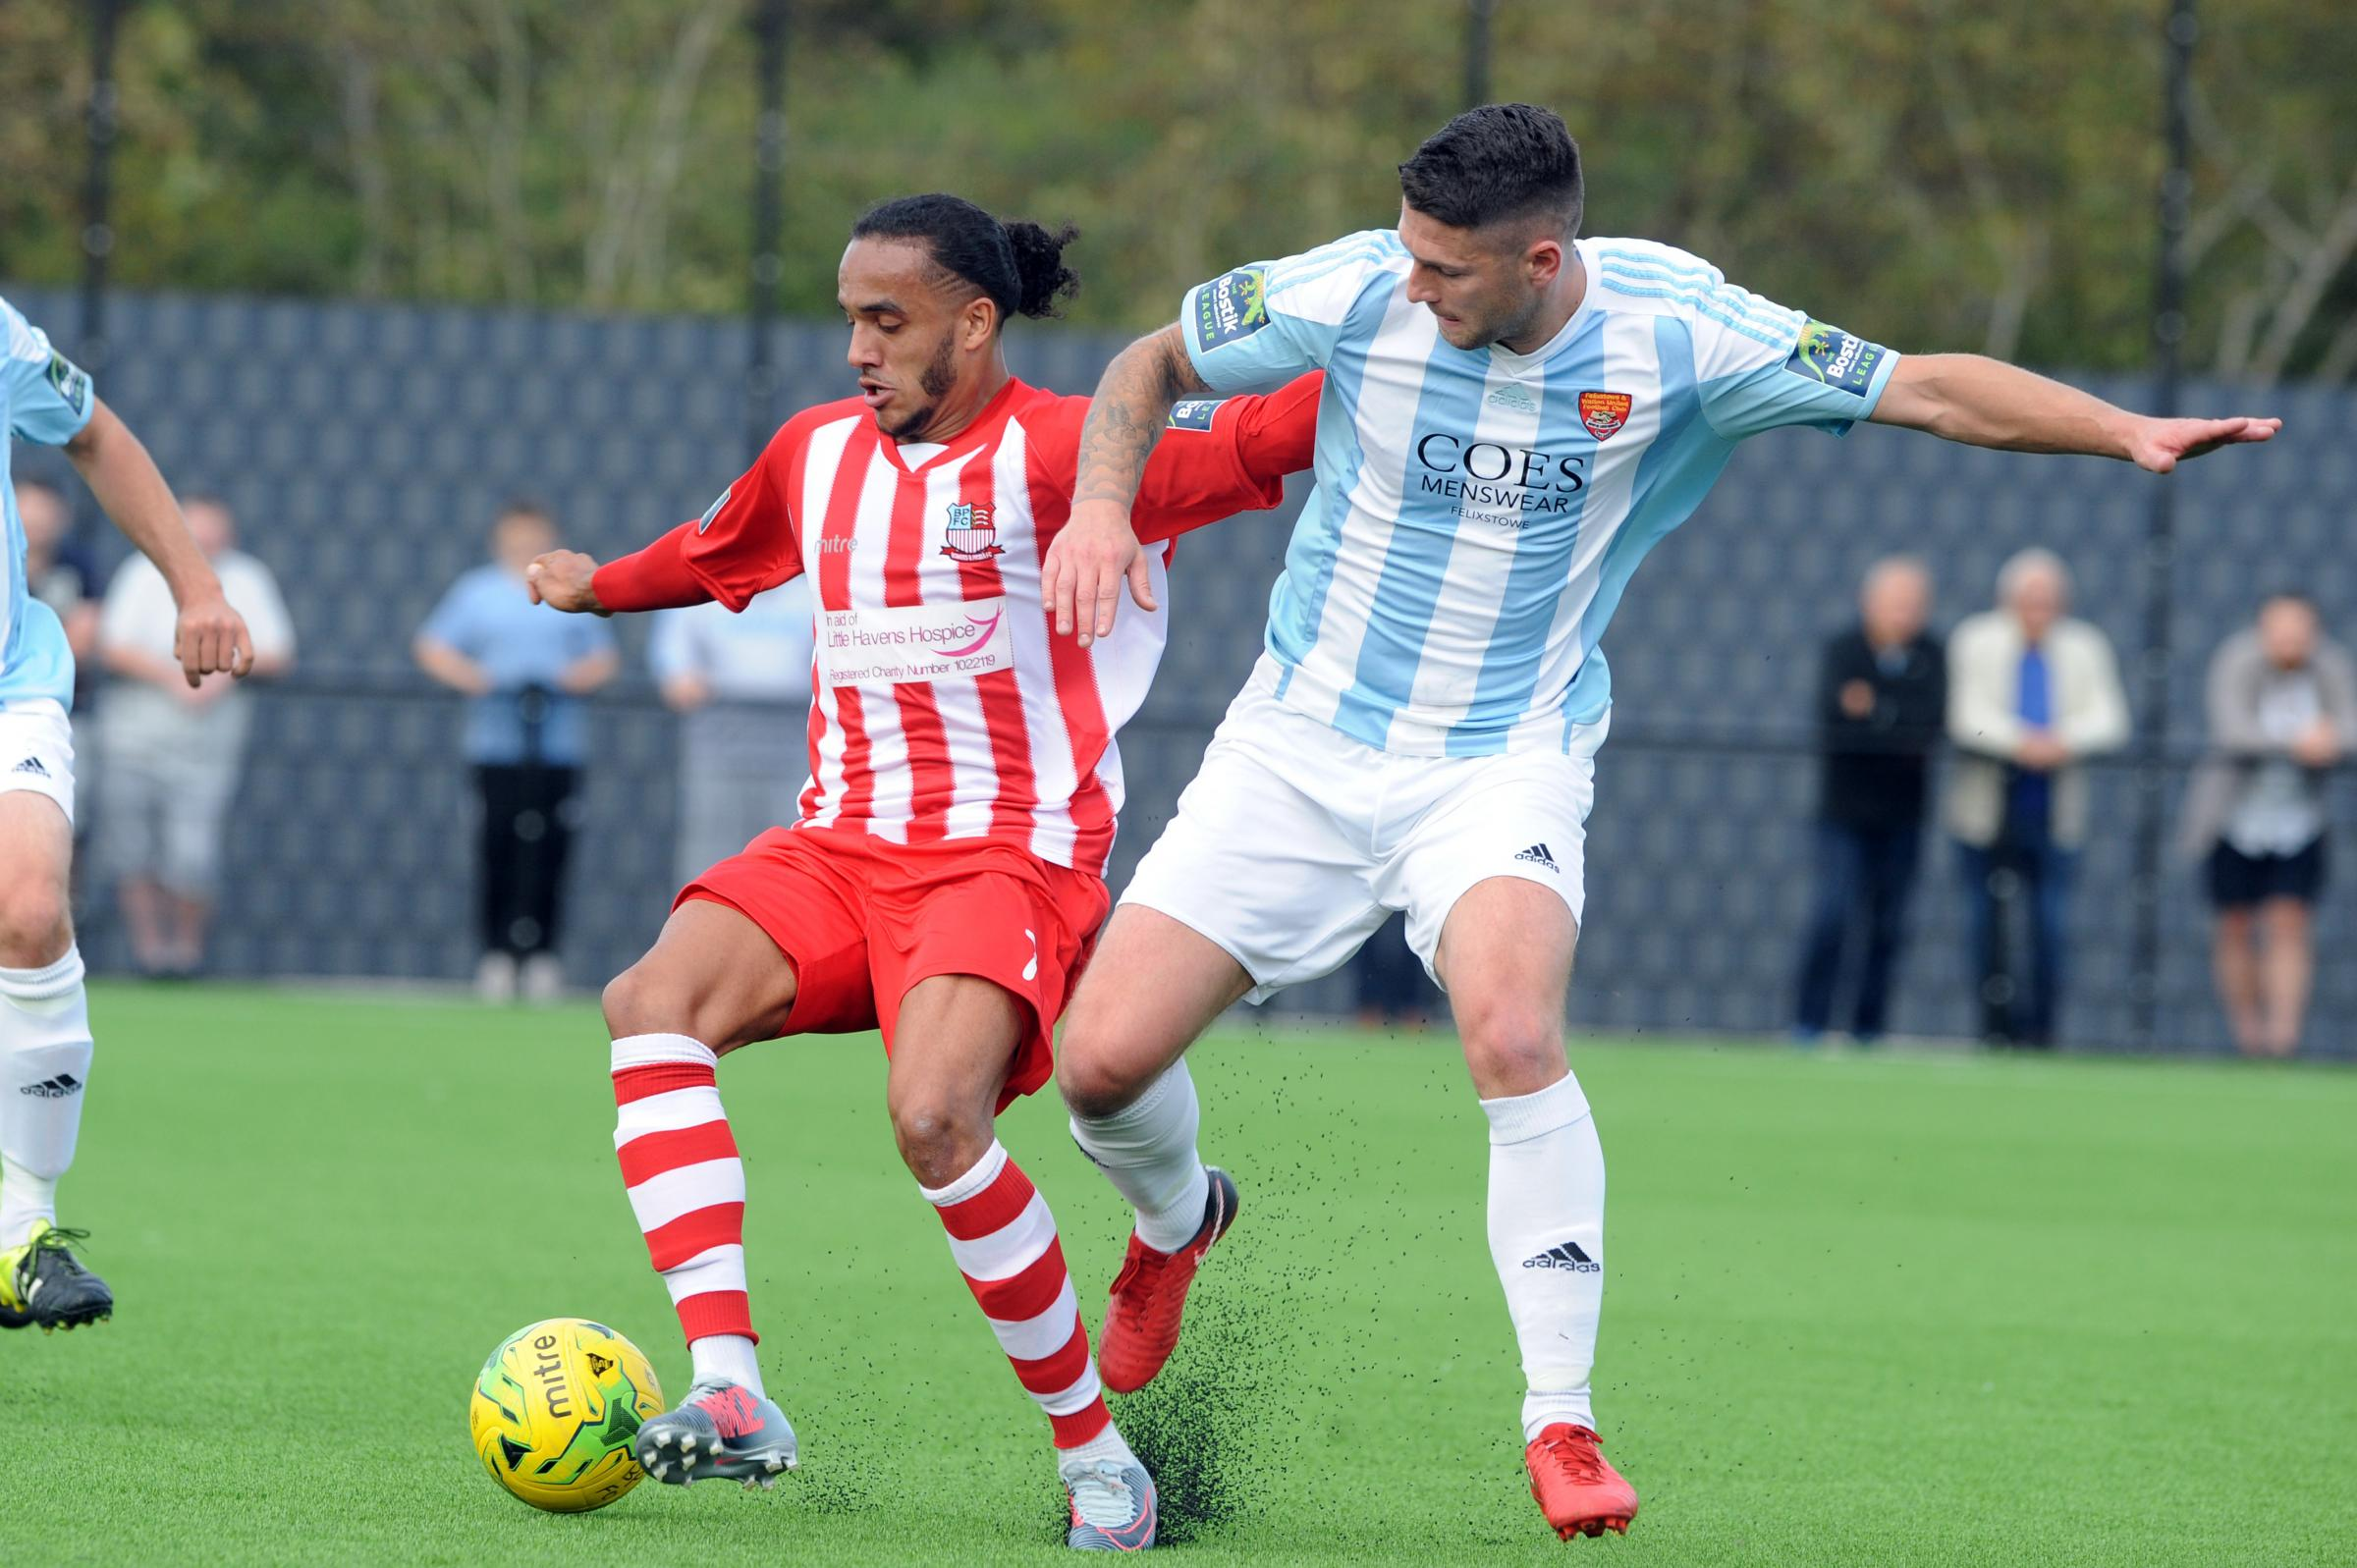 Came back to haunt his former club - Quentin Monville scored the only goal as Bowers & Pitsea overcame Barking Picture: LUAN MARSHALL